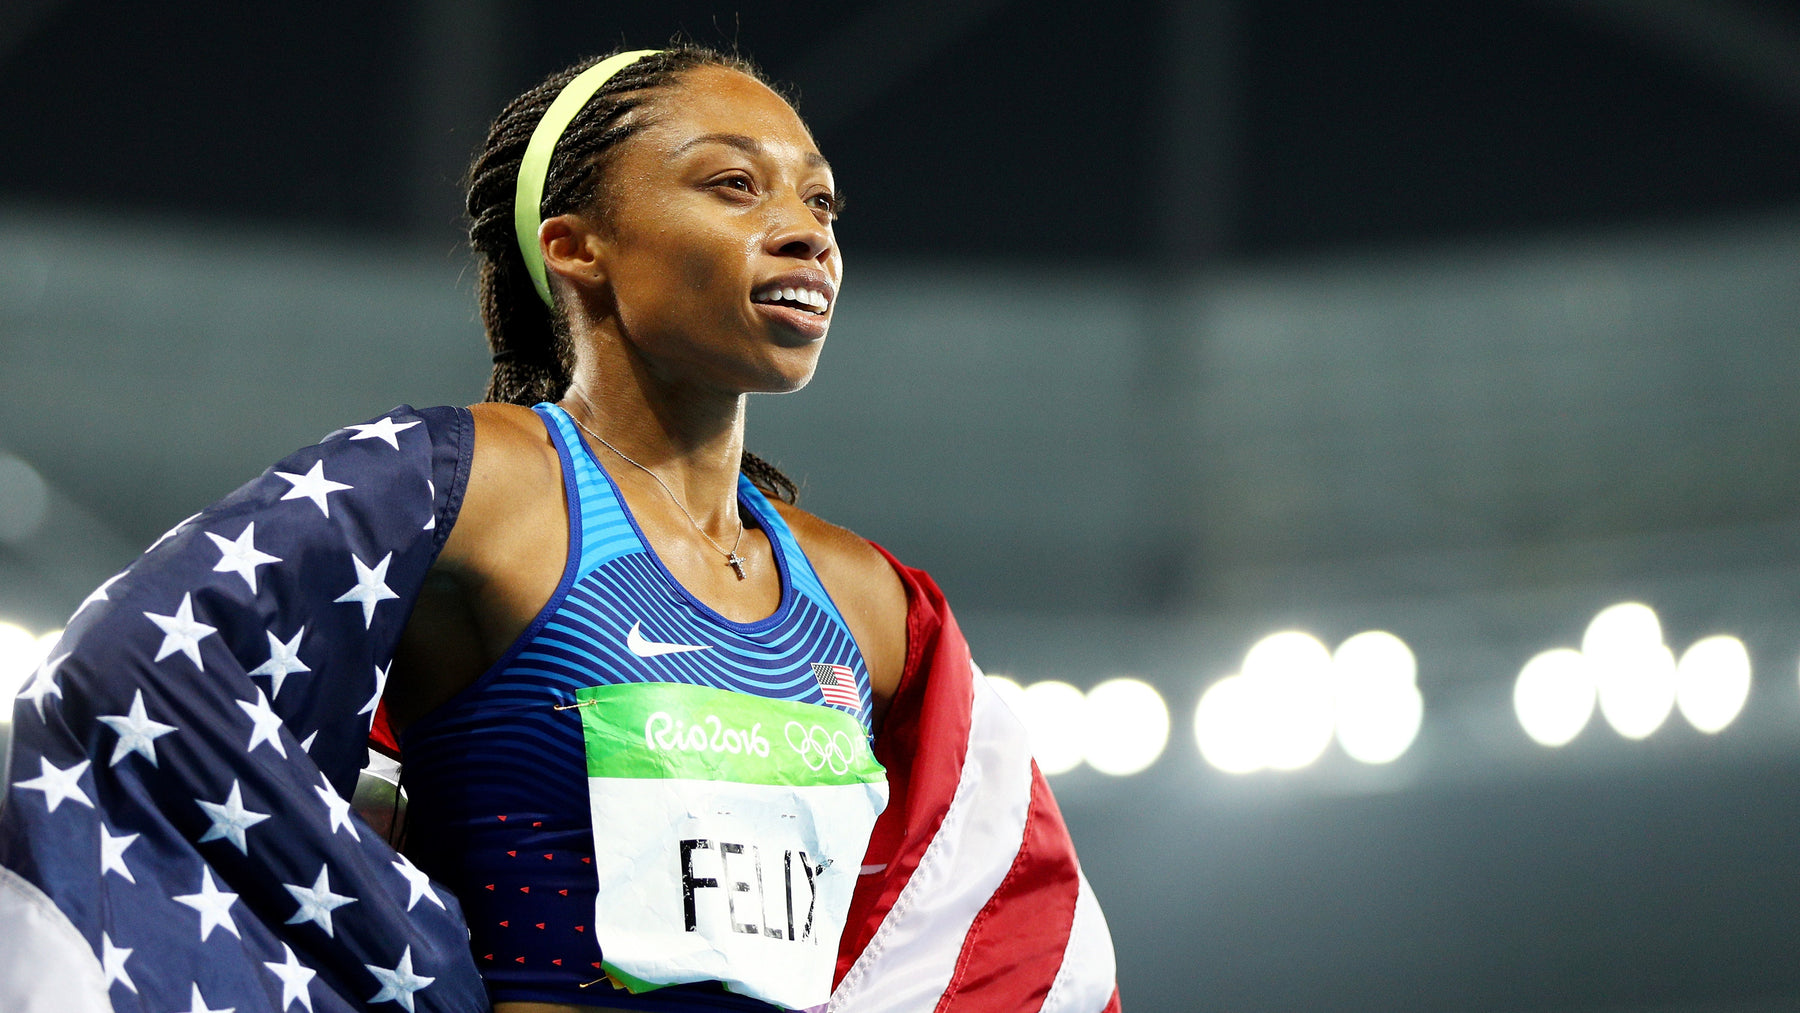 Allyson Felix negotiation with Nike